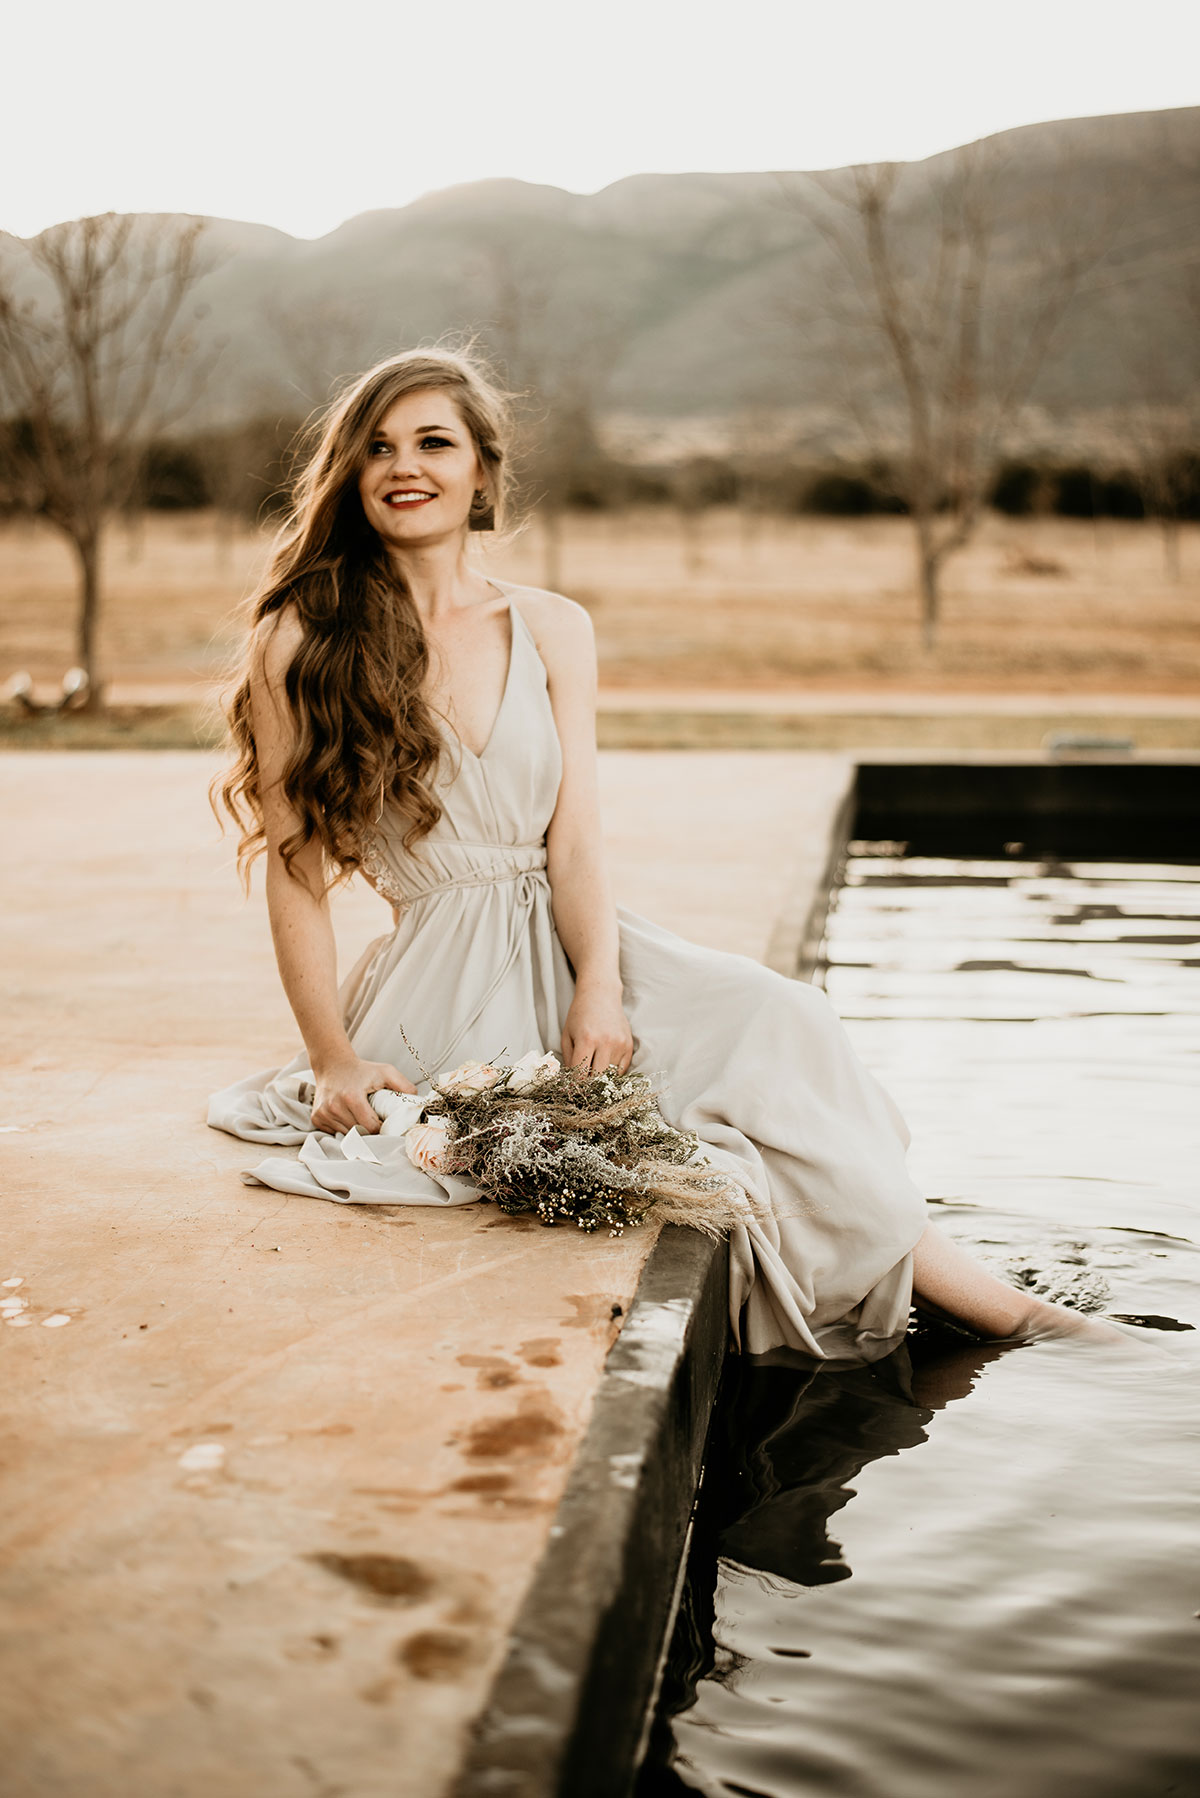 Playing in the Water at The Nut Farm Venue by Echo Photography